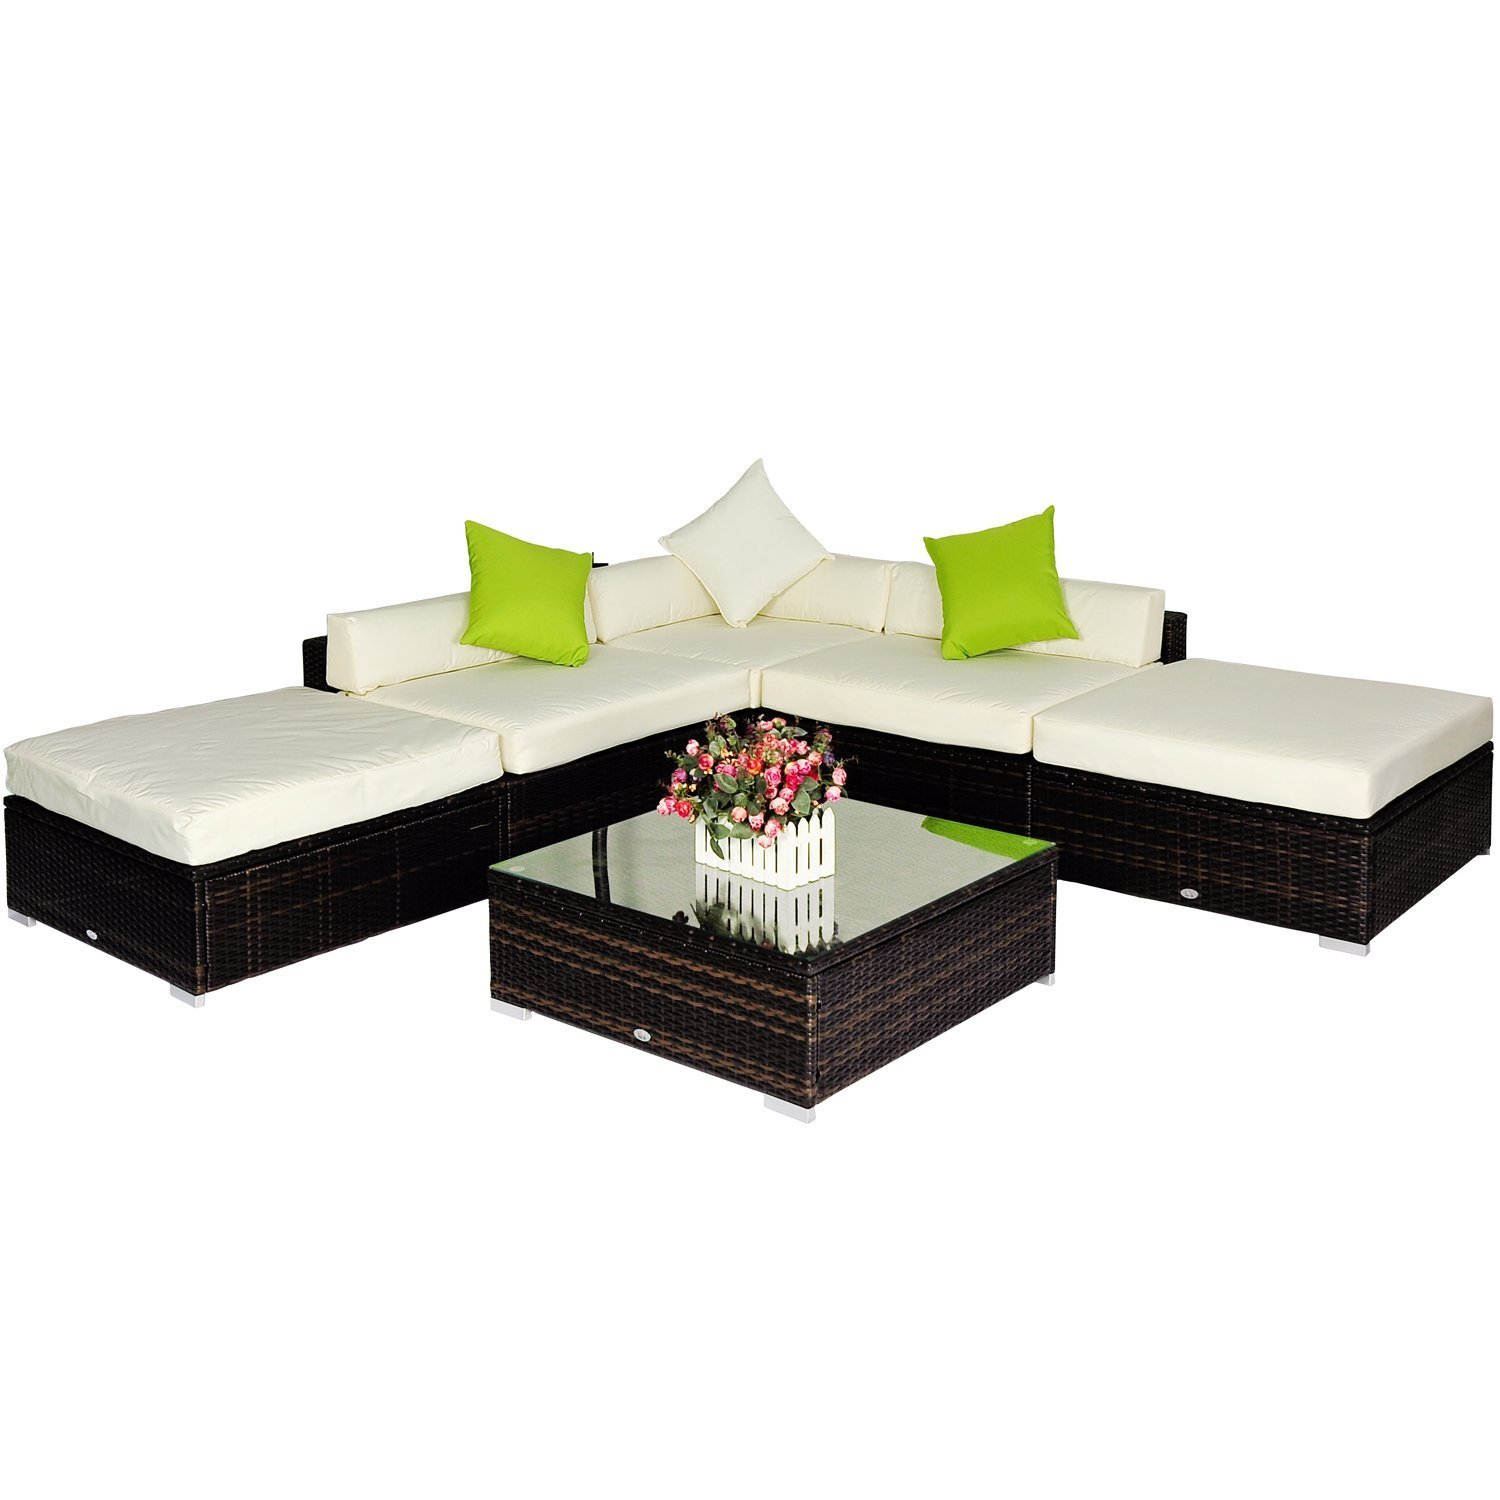 rattan sitzgruppe garnitur 18 teilig braun g nstig online kaufen. Black Bedroom Furniture Sets. Home Design Ideas